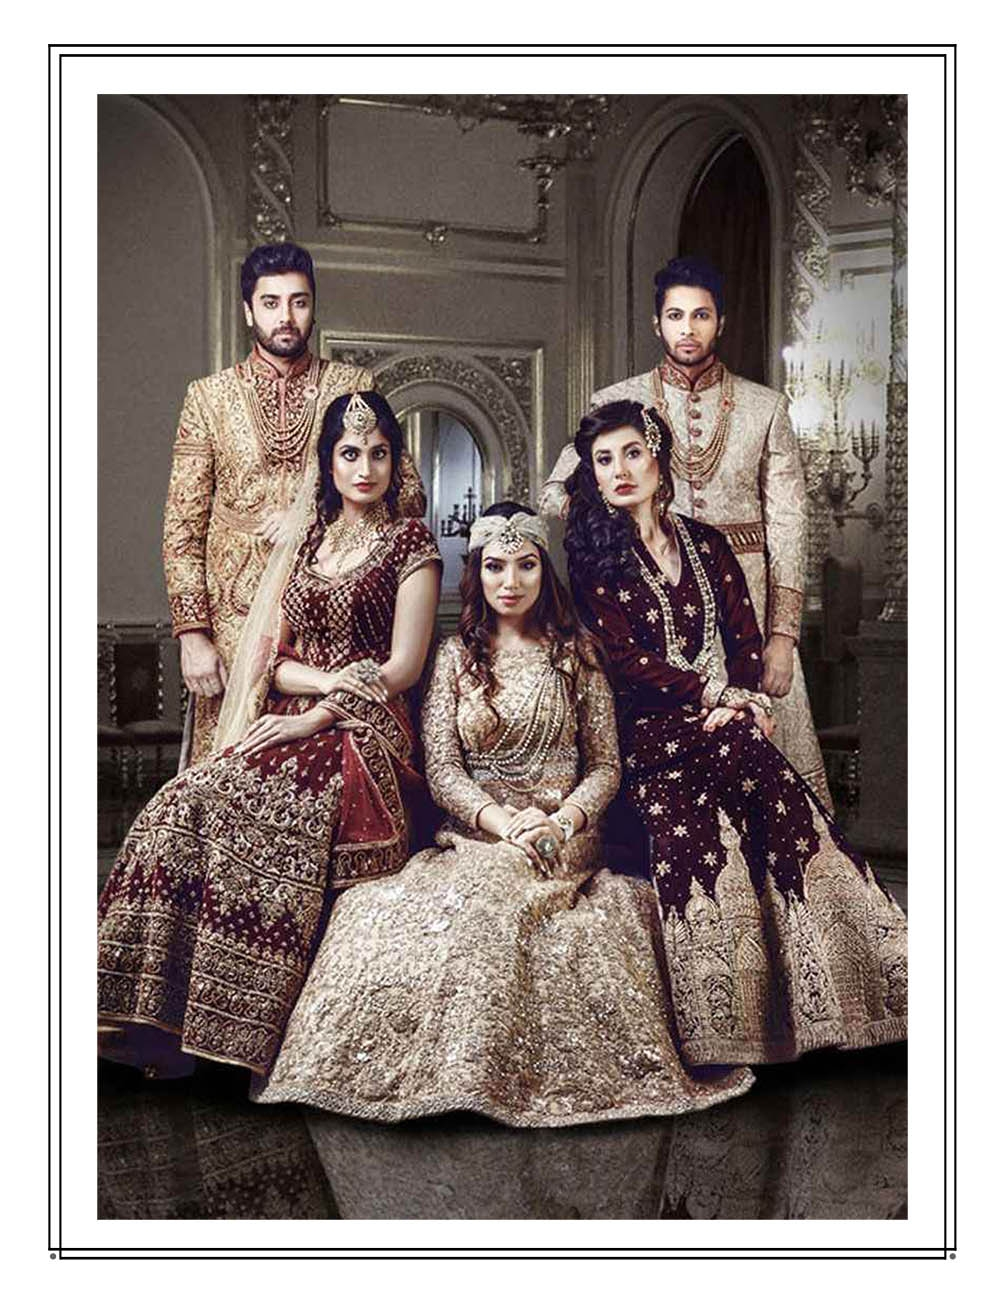 Bridal trousseau with intricate Resham, Zardozi and Parsi details